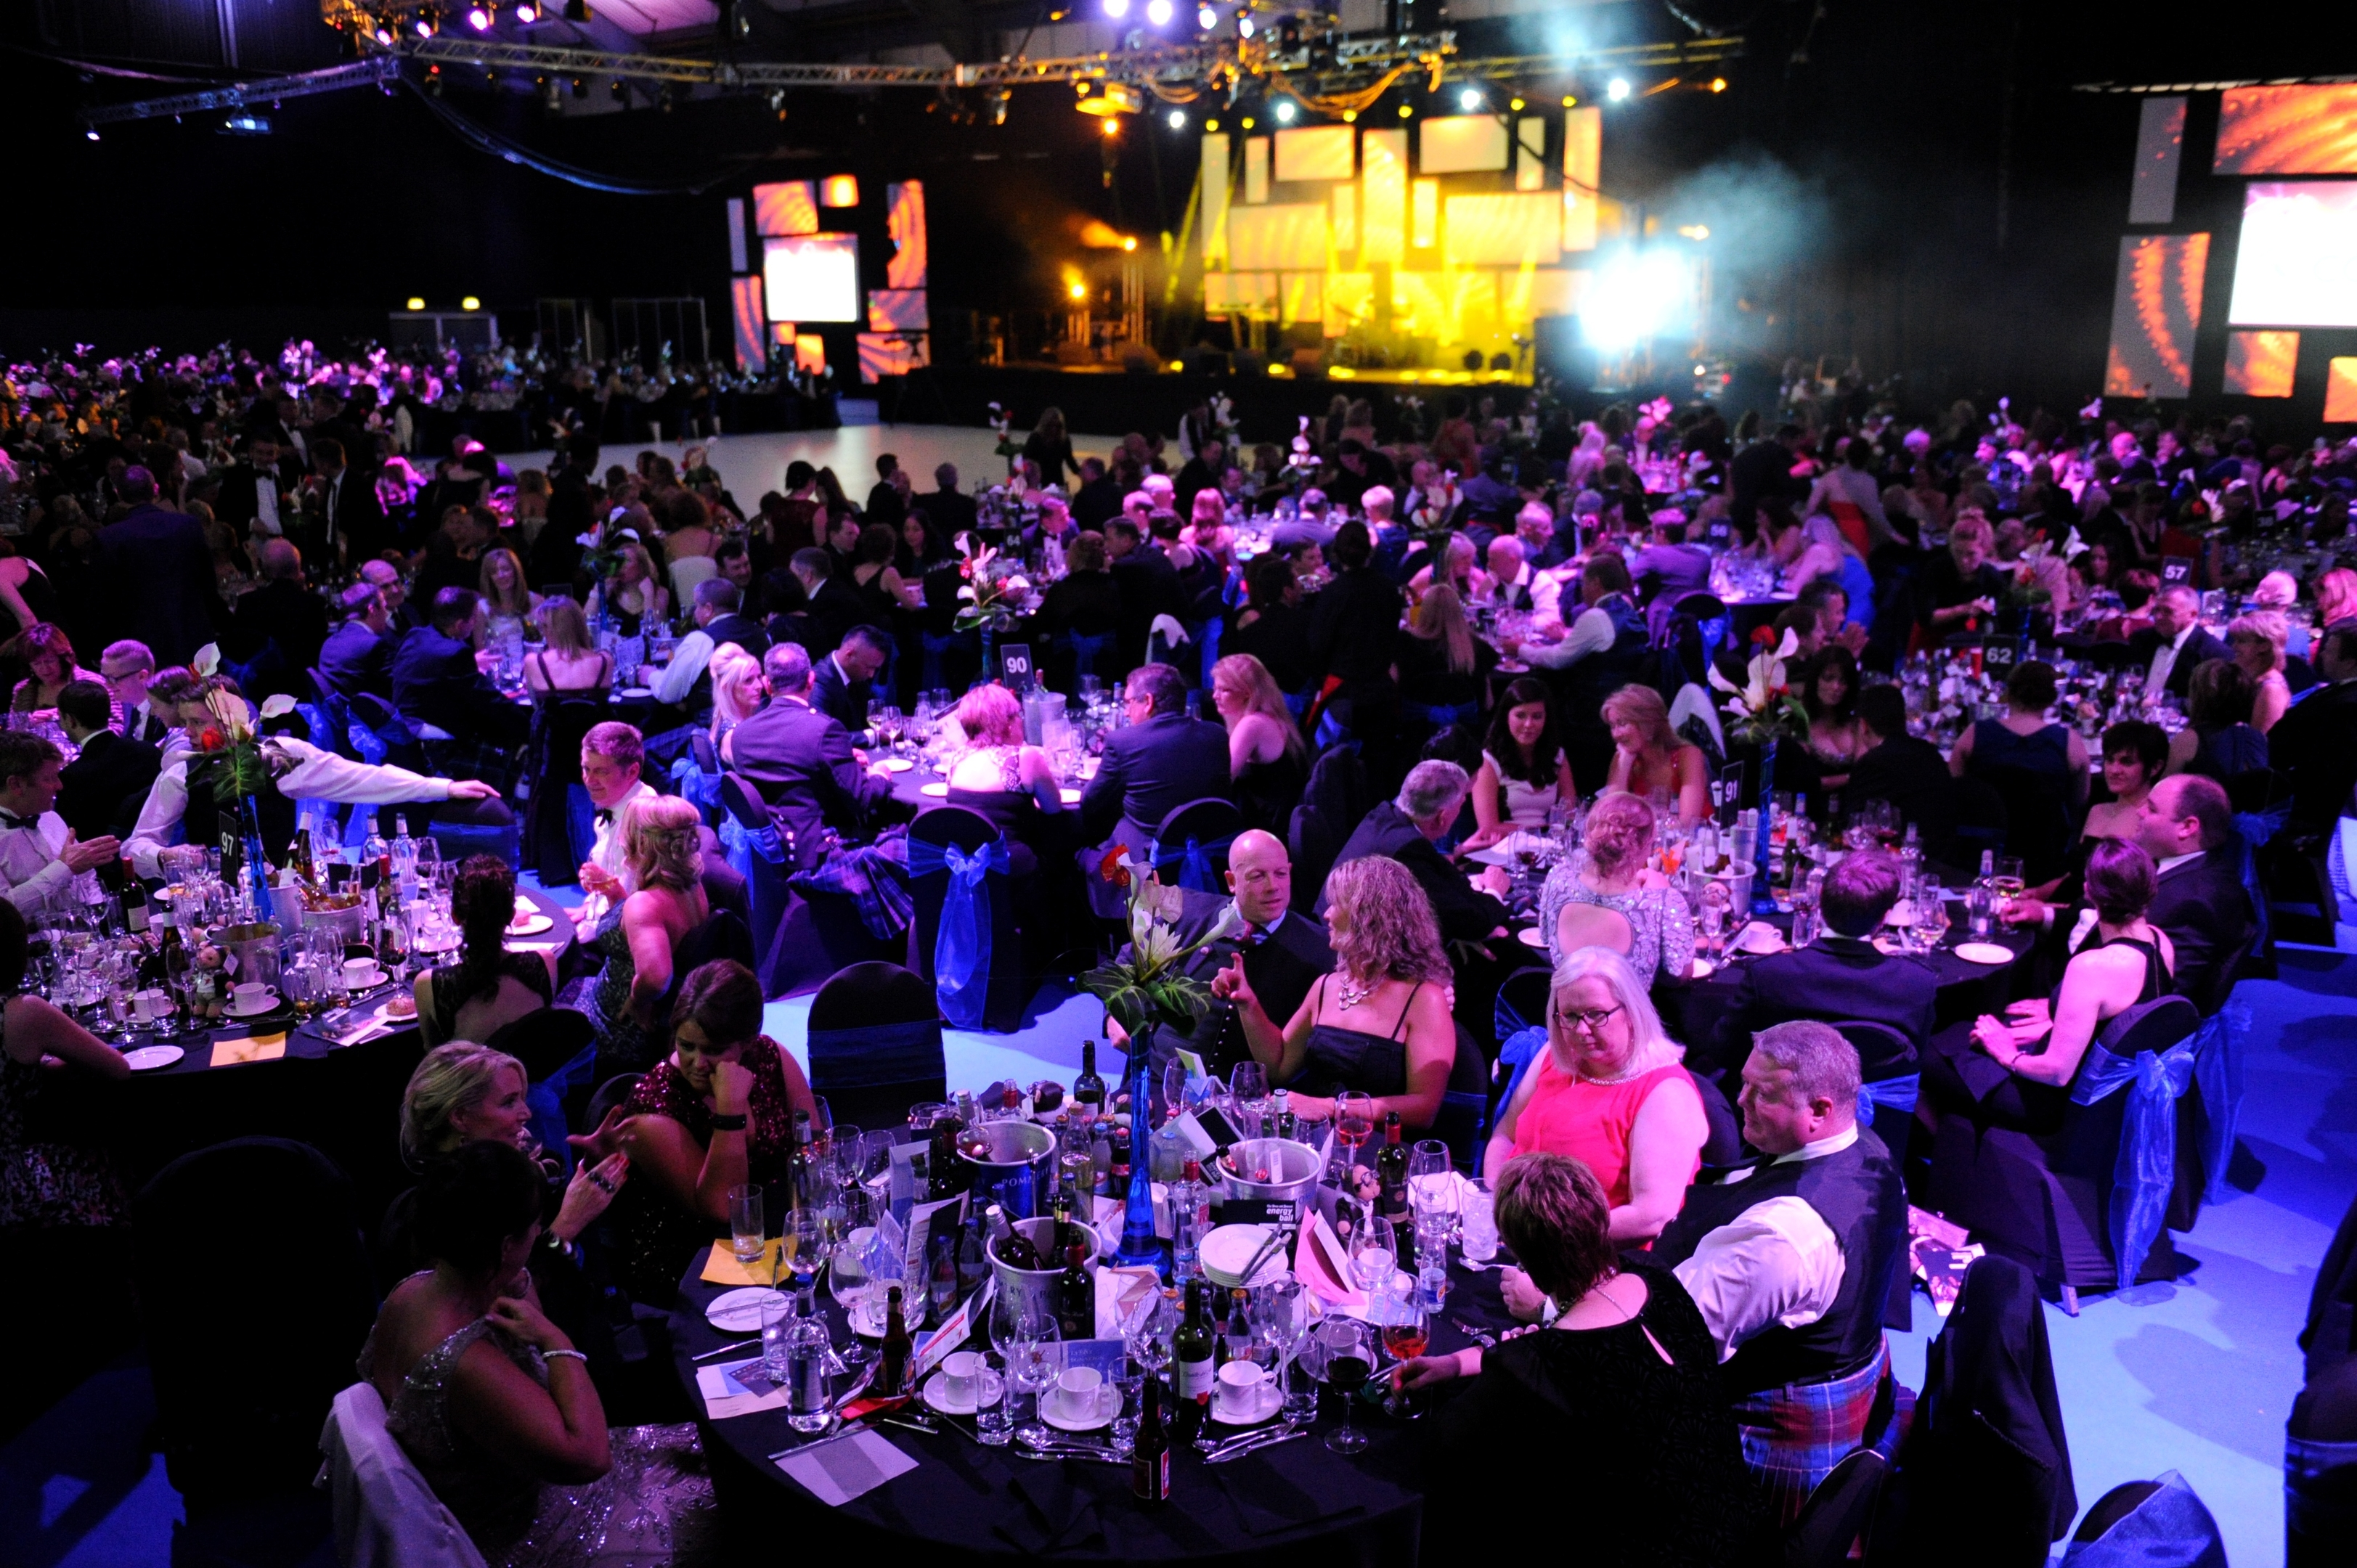 Highlights from last year's Energy Ball